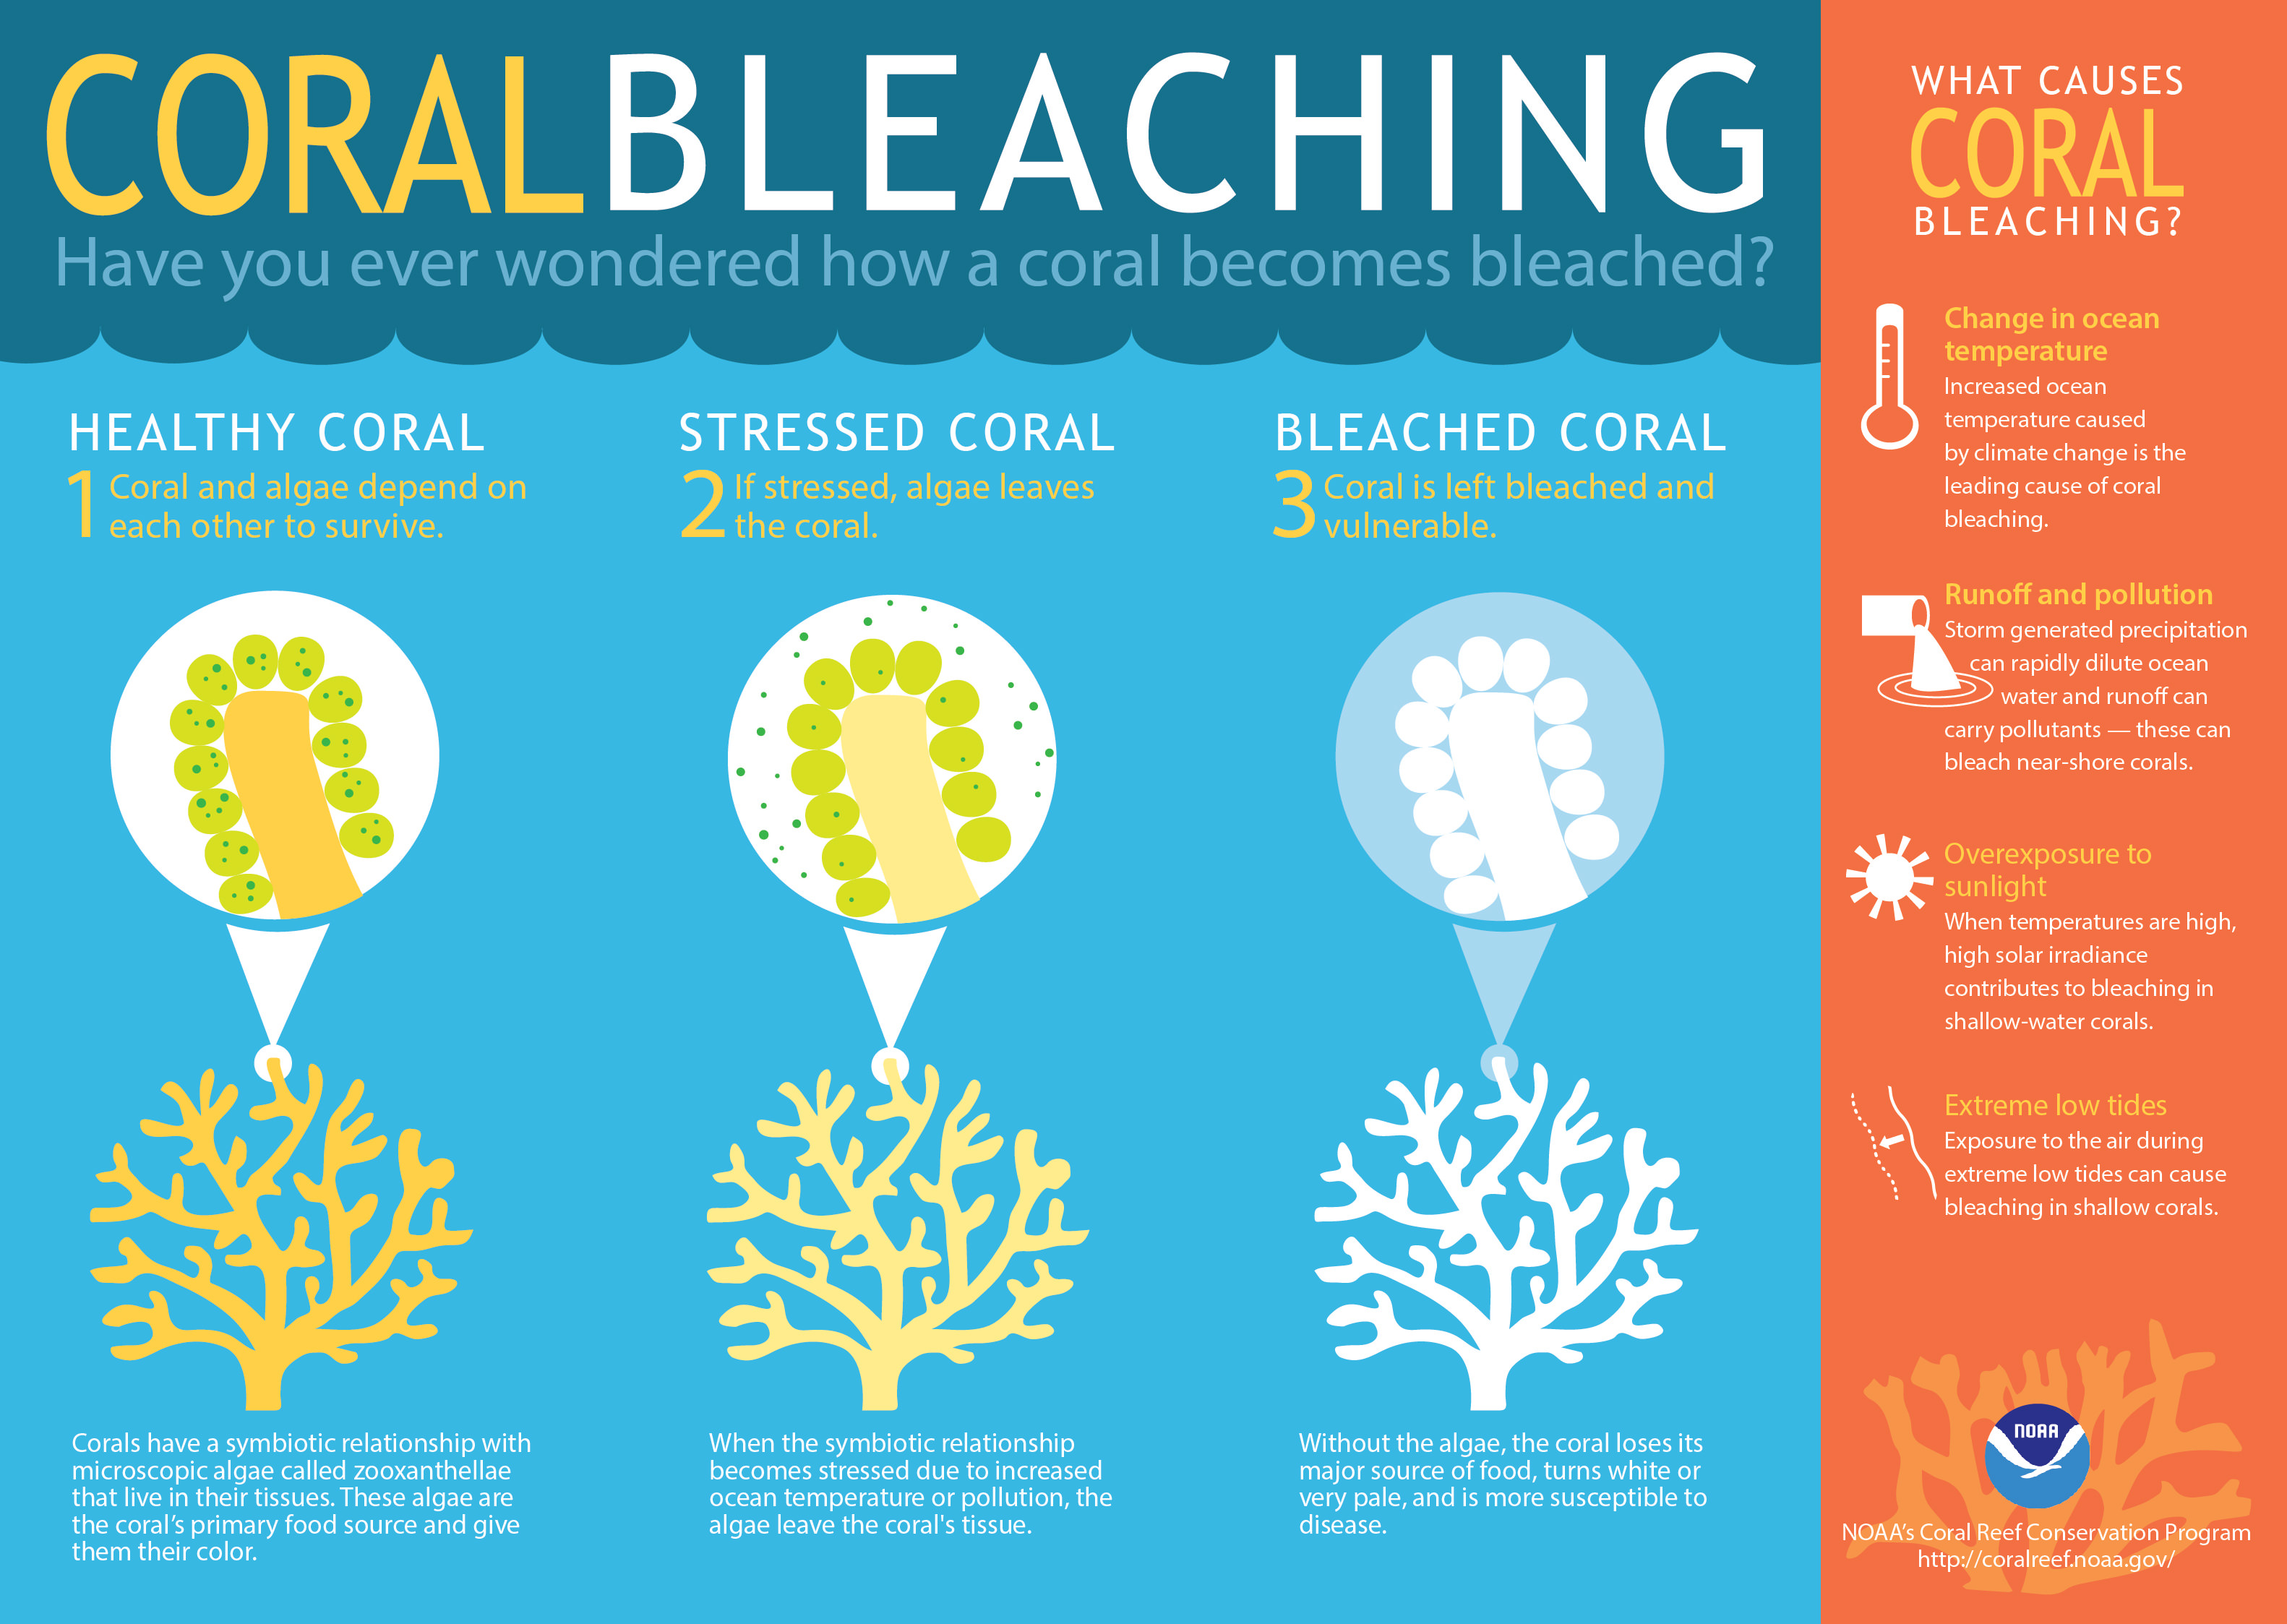 http://oceanservice.noaa.gov/facts/coralbleaching-large.jpg